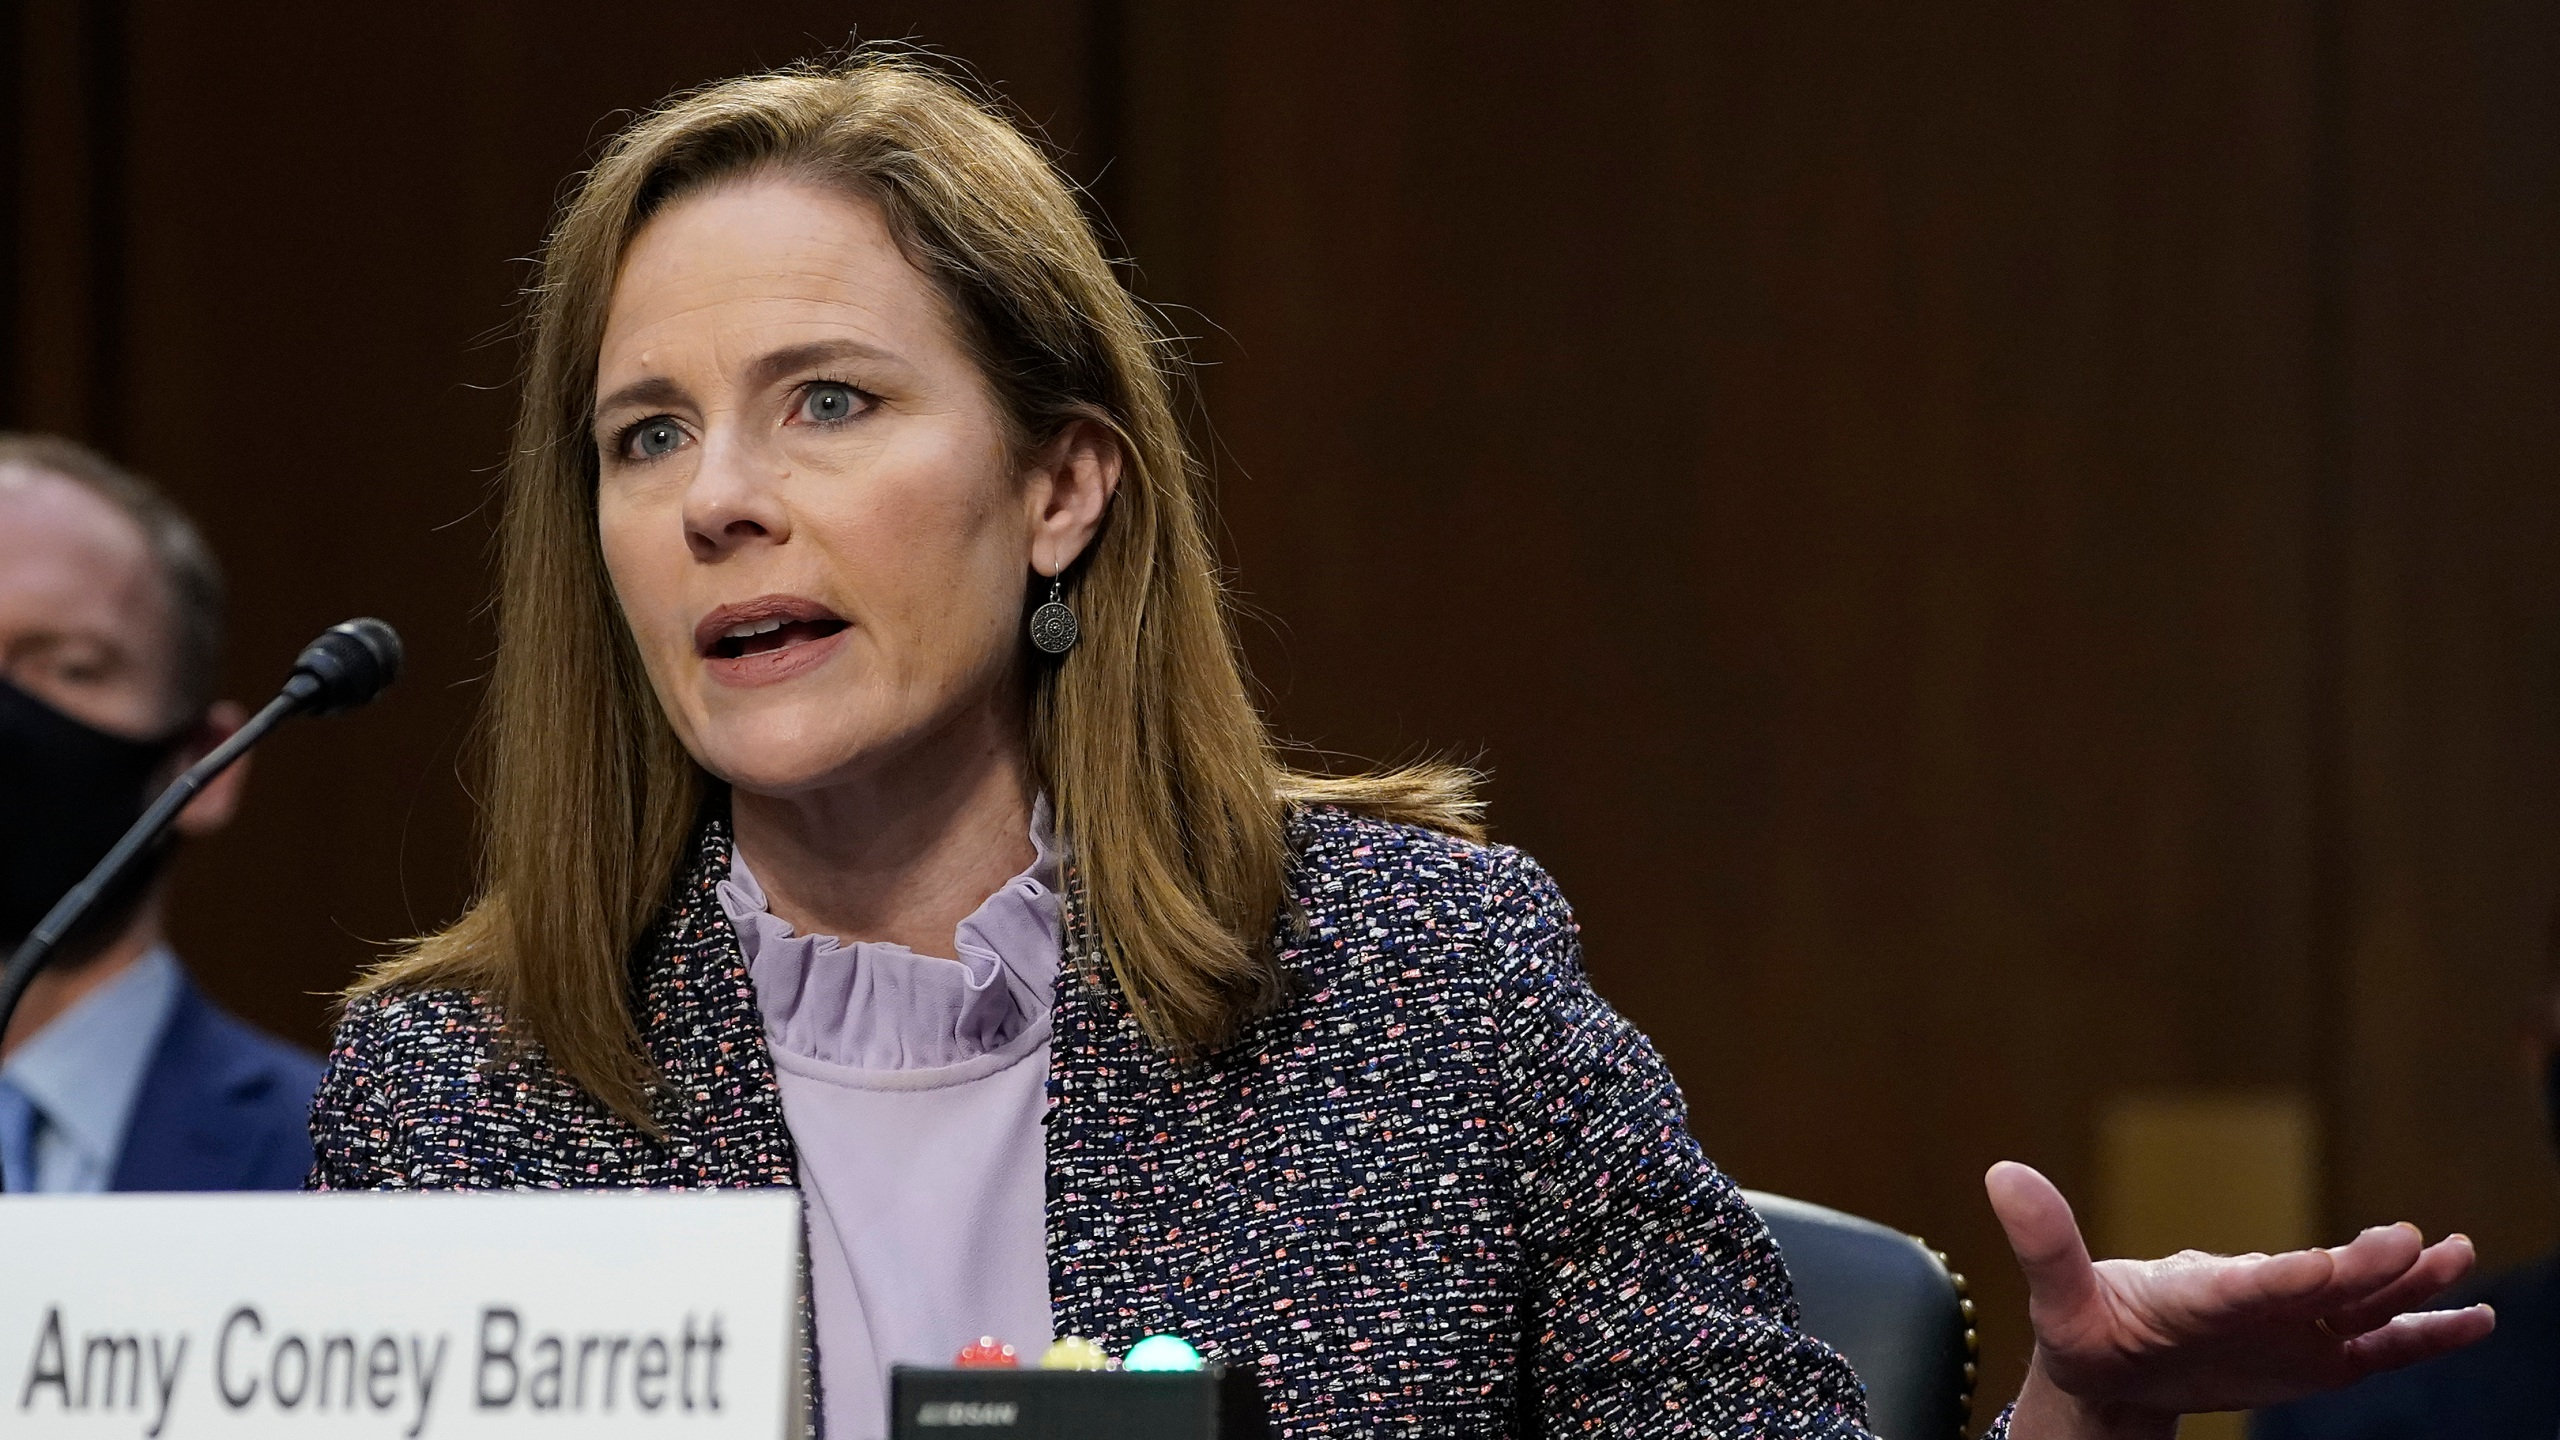 Supreme Court nominee Amy Coney Barrett testifies before the Senate Judiciary Committee during the third day of her confirmation hearings on Capitol Hill in Washington on Oct. 14, 2020. (Drew Angerer/Pool via AP)